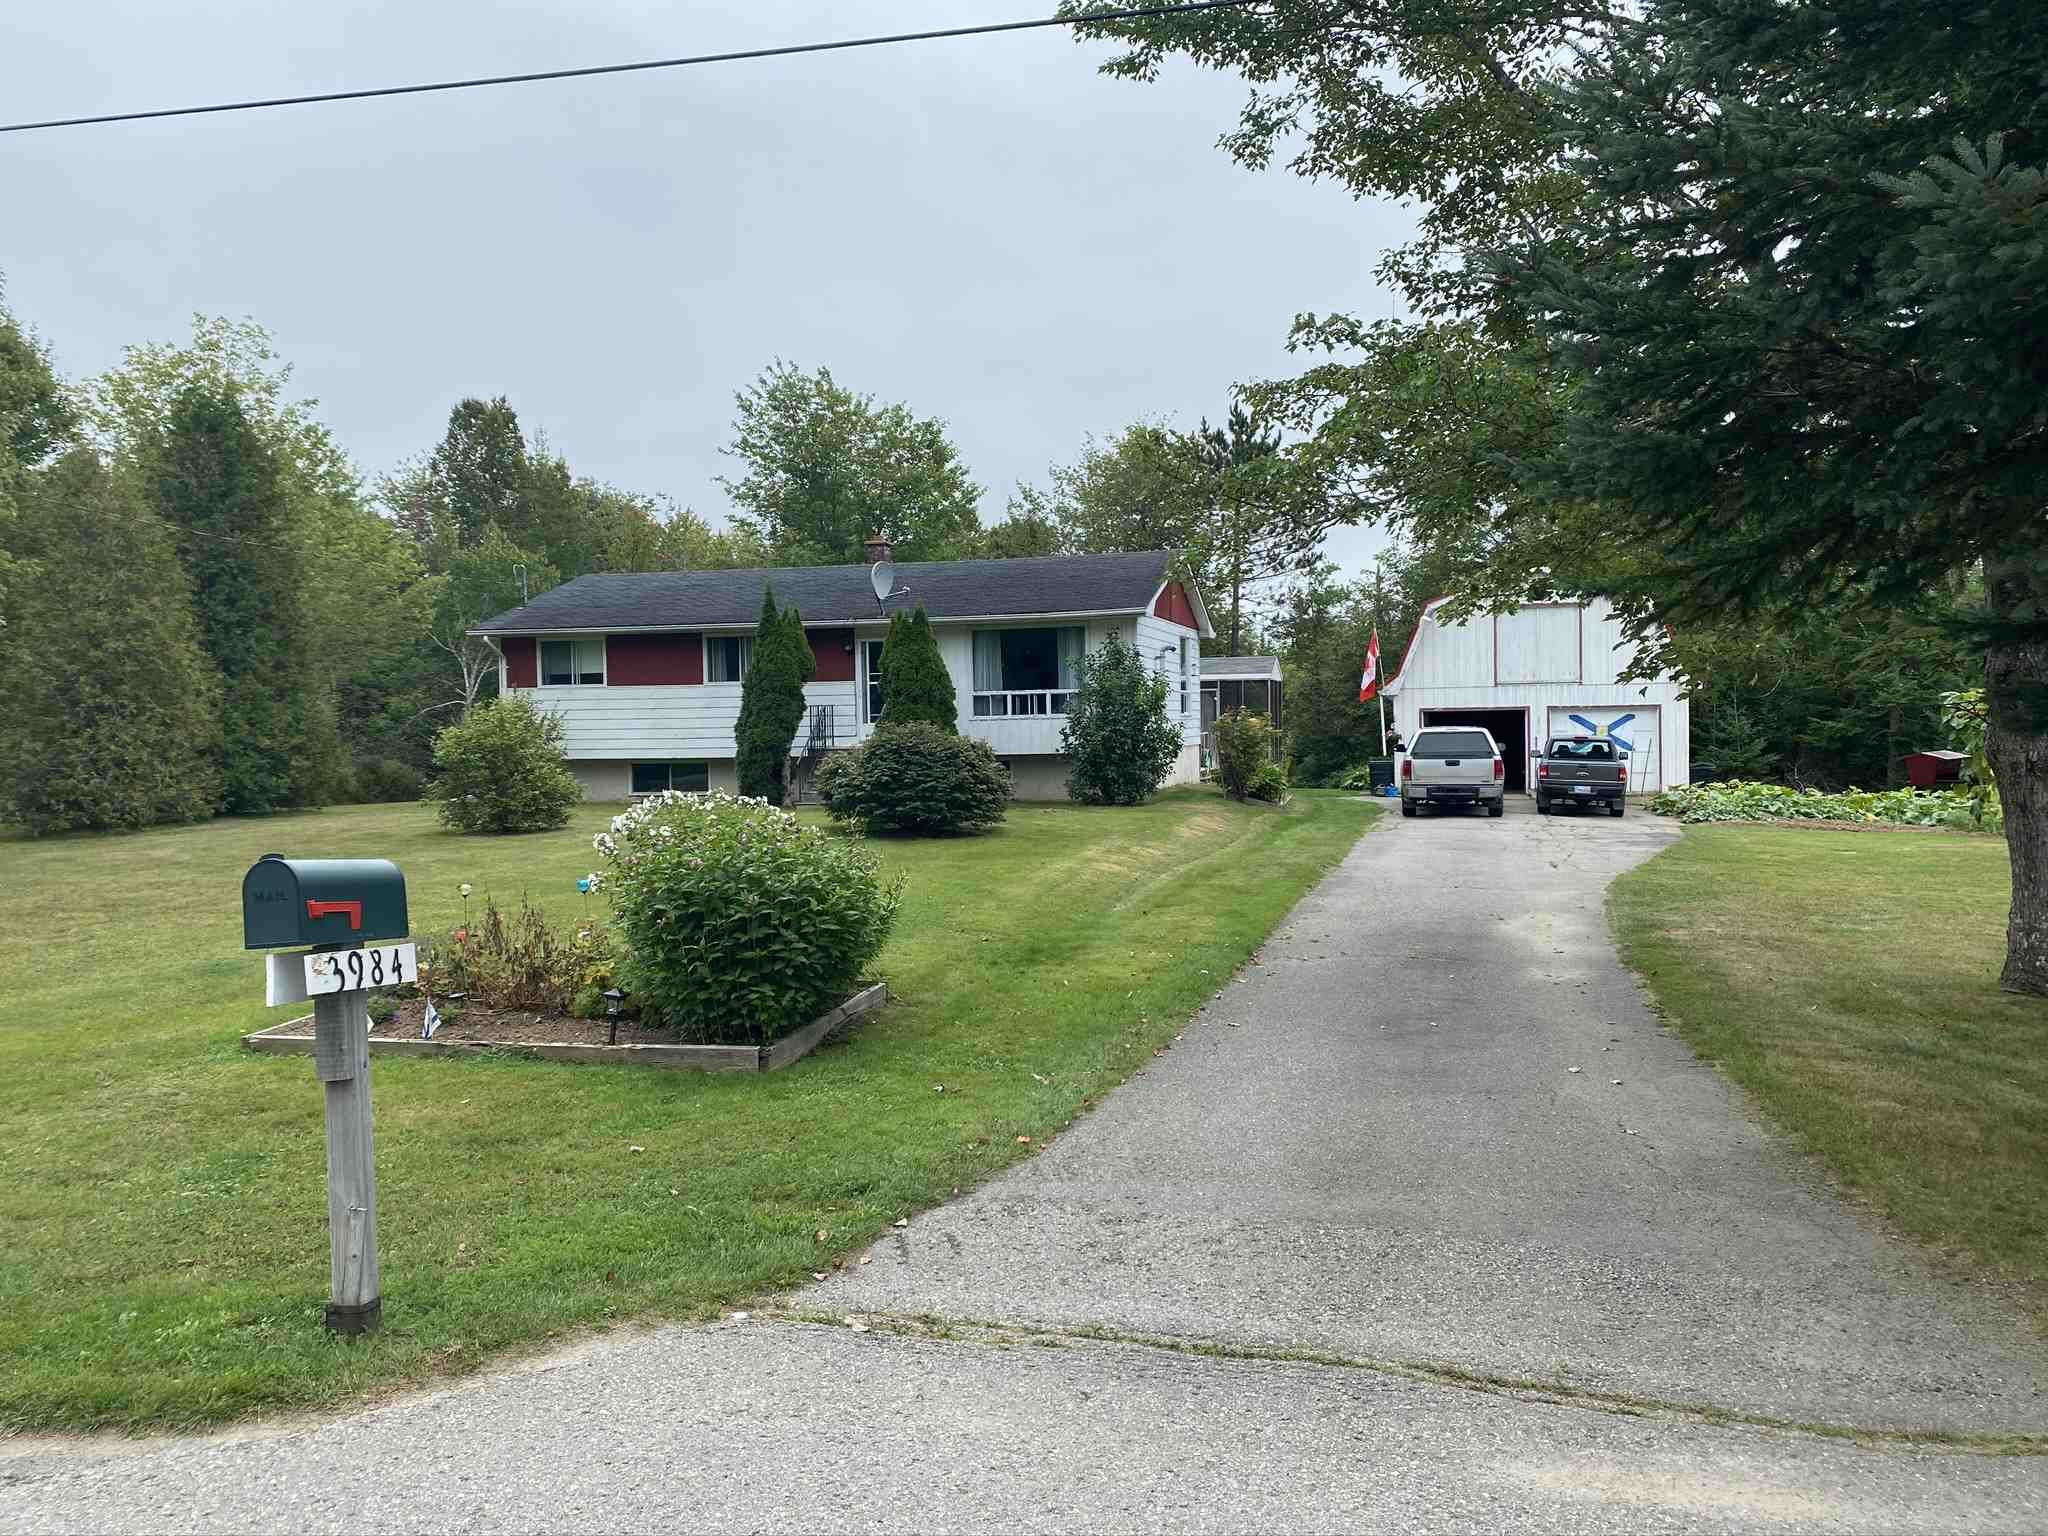 Main Photo: 3984 Cameron Settlement Road in Caledonia: 303-Guysborough County Residential for sale (Highland Region)  : MLS®# 202106224